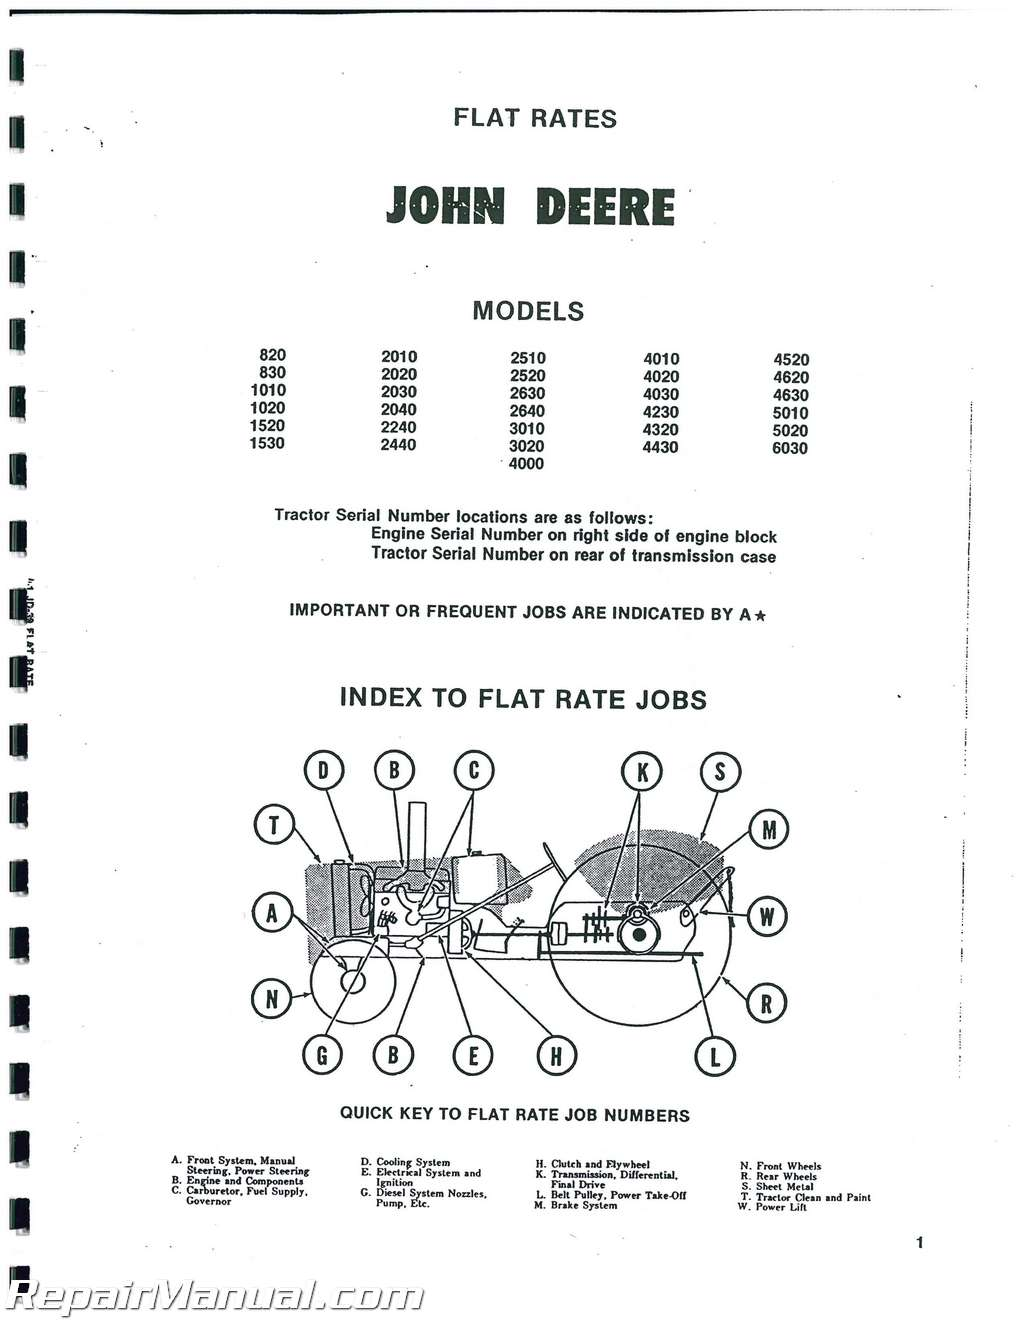 John Deere 2440 Wiring Diagram 2240 Ignition Libraries Tractor Flat Rate Manualjohn 10